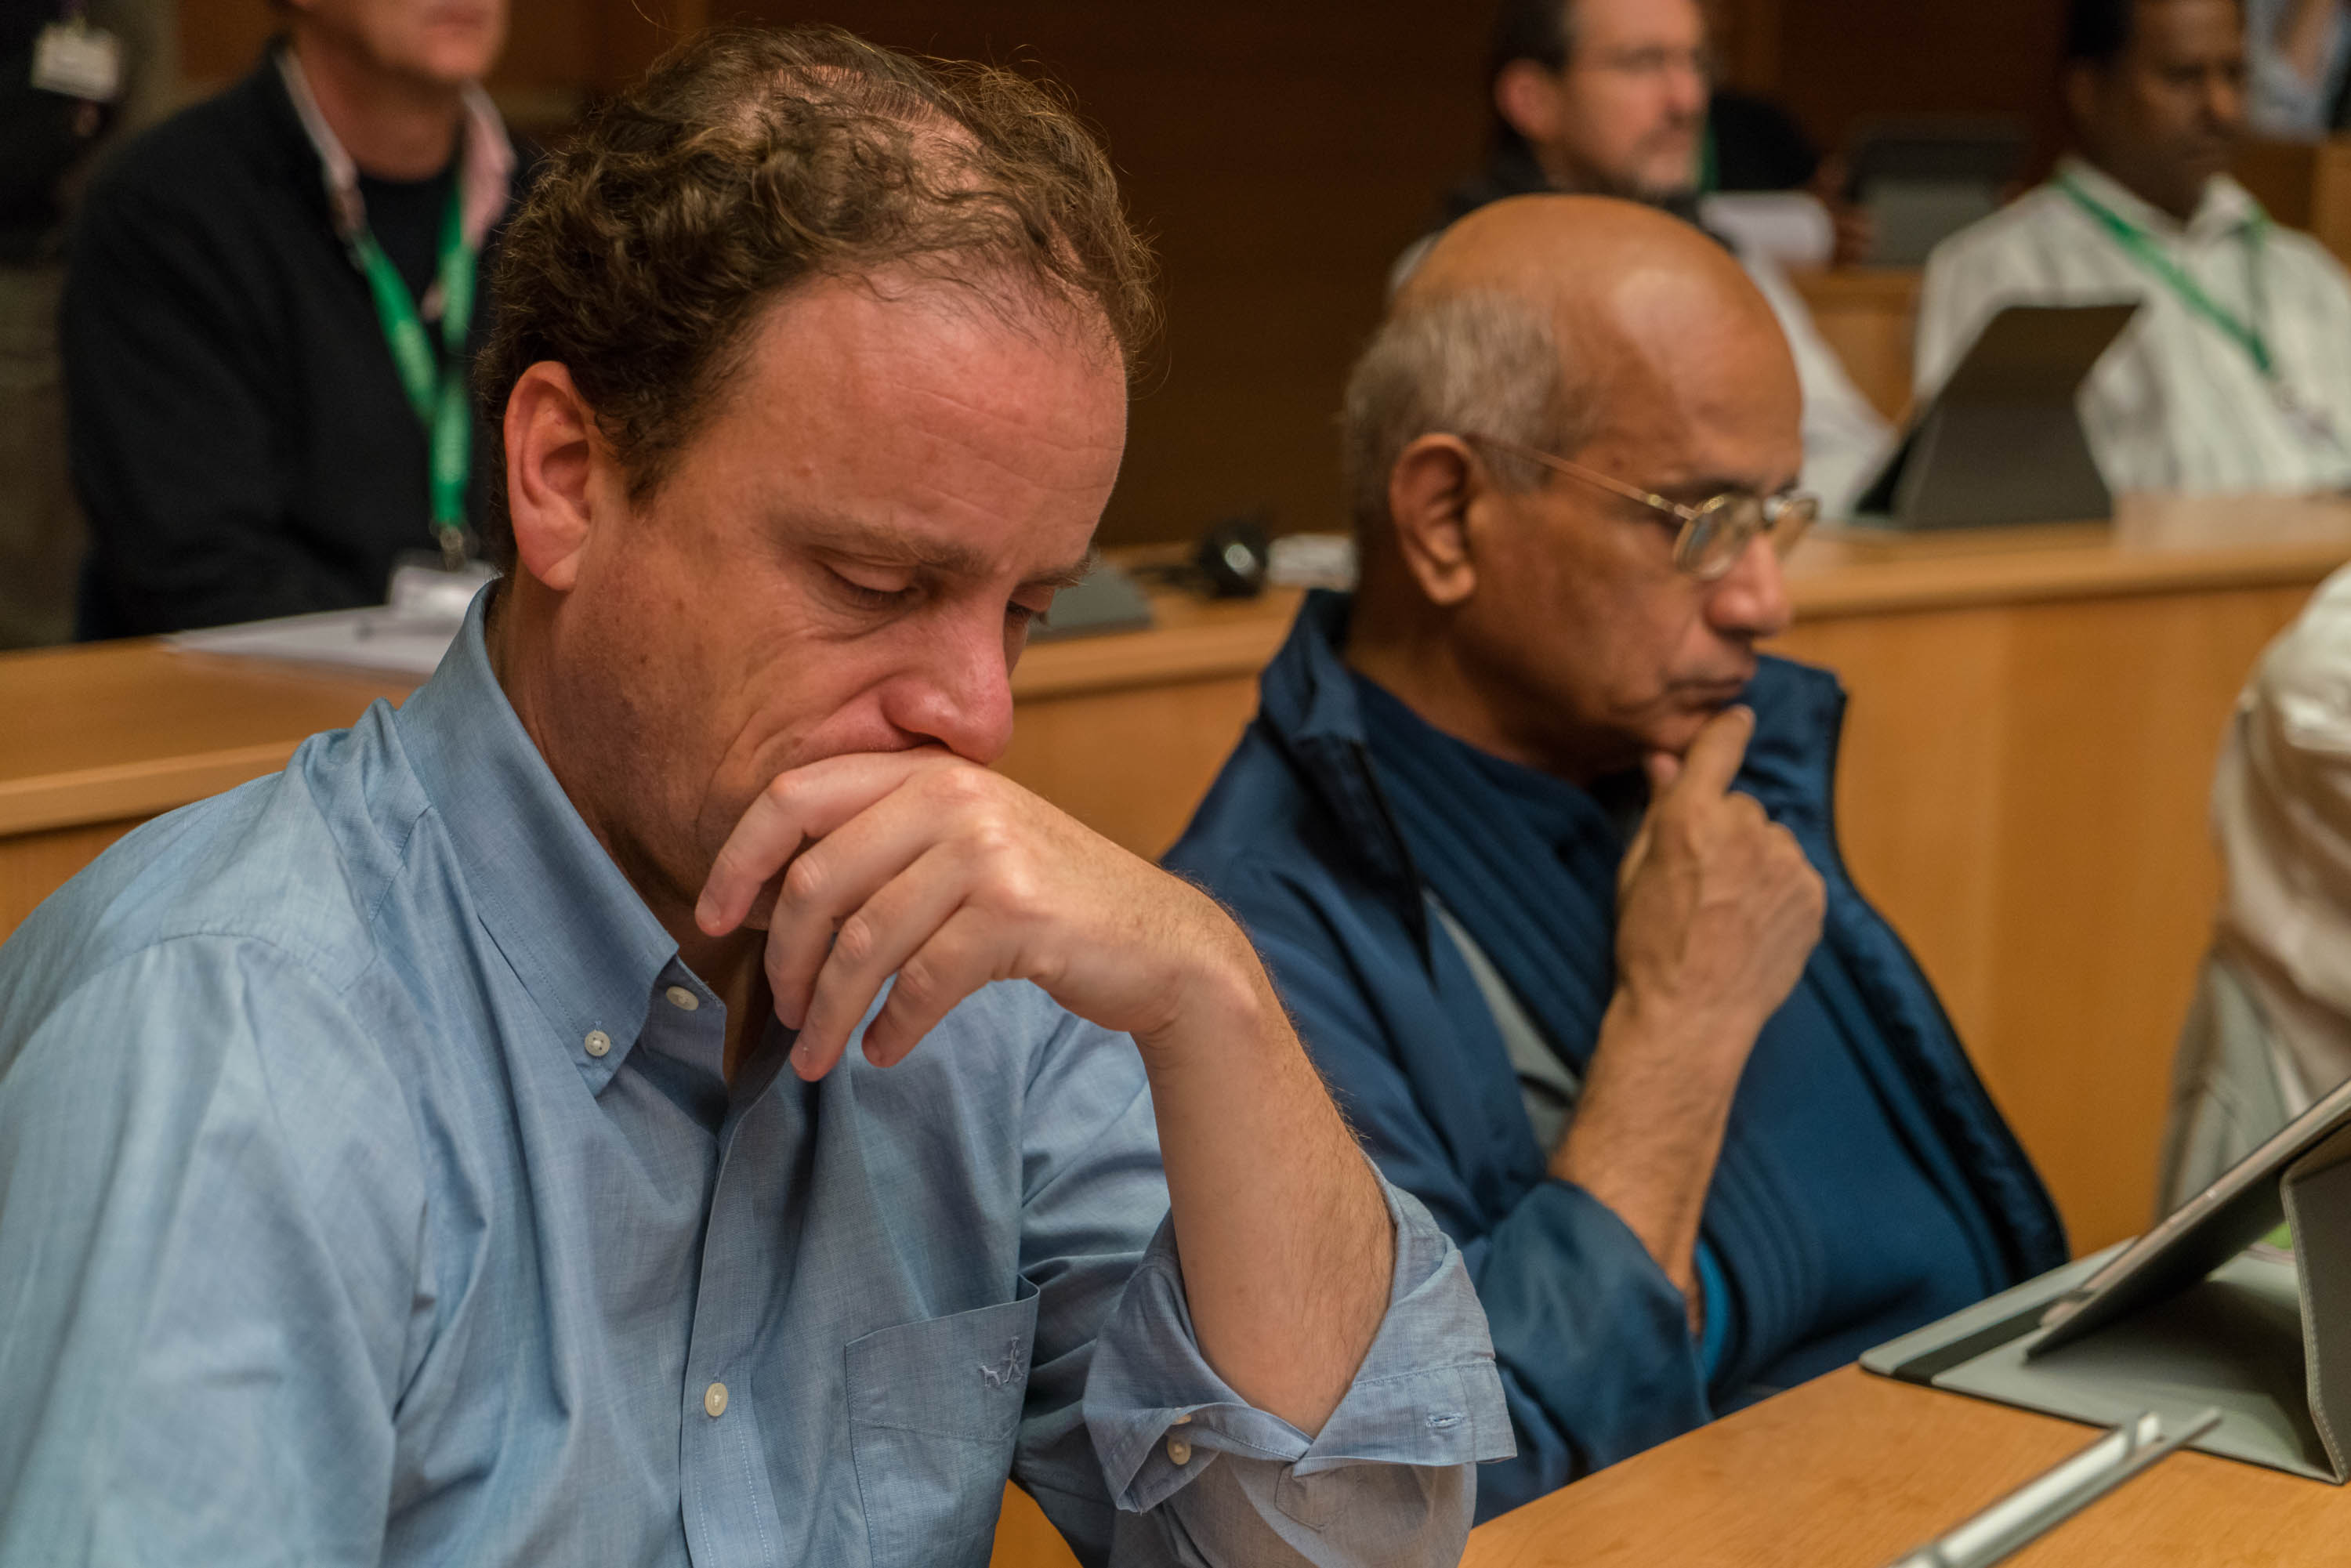 Two Jesuits look over meeting materials in the aula, or meeting room, Oct. 20 at General Congregation 36. The global meeting of Jesuits will make governing decisions for the next several years. Photo credit: Courtesy of General Congregation 36